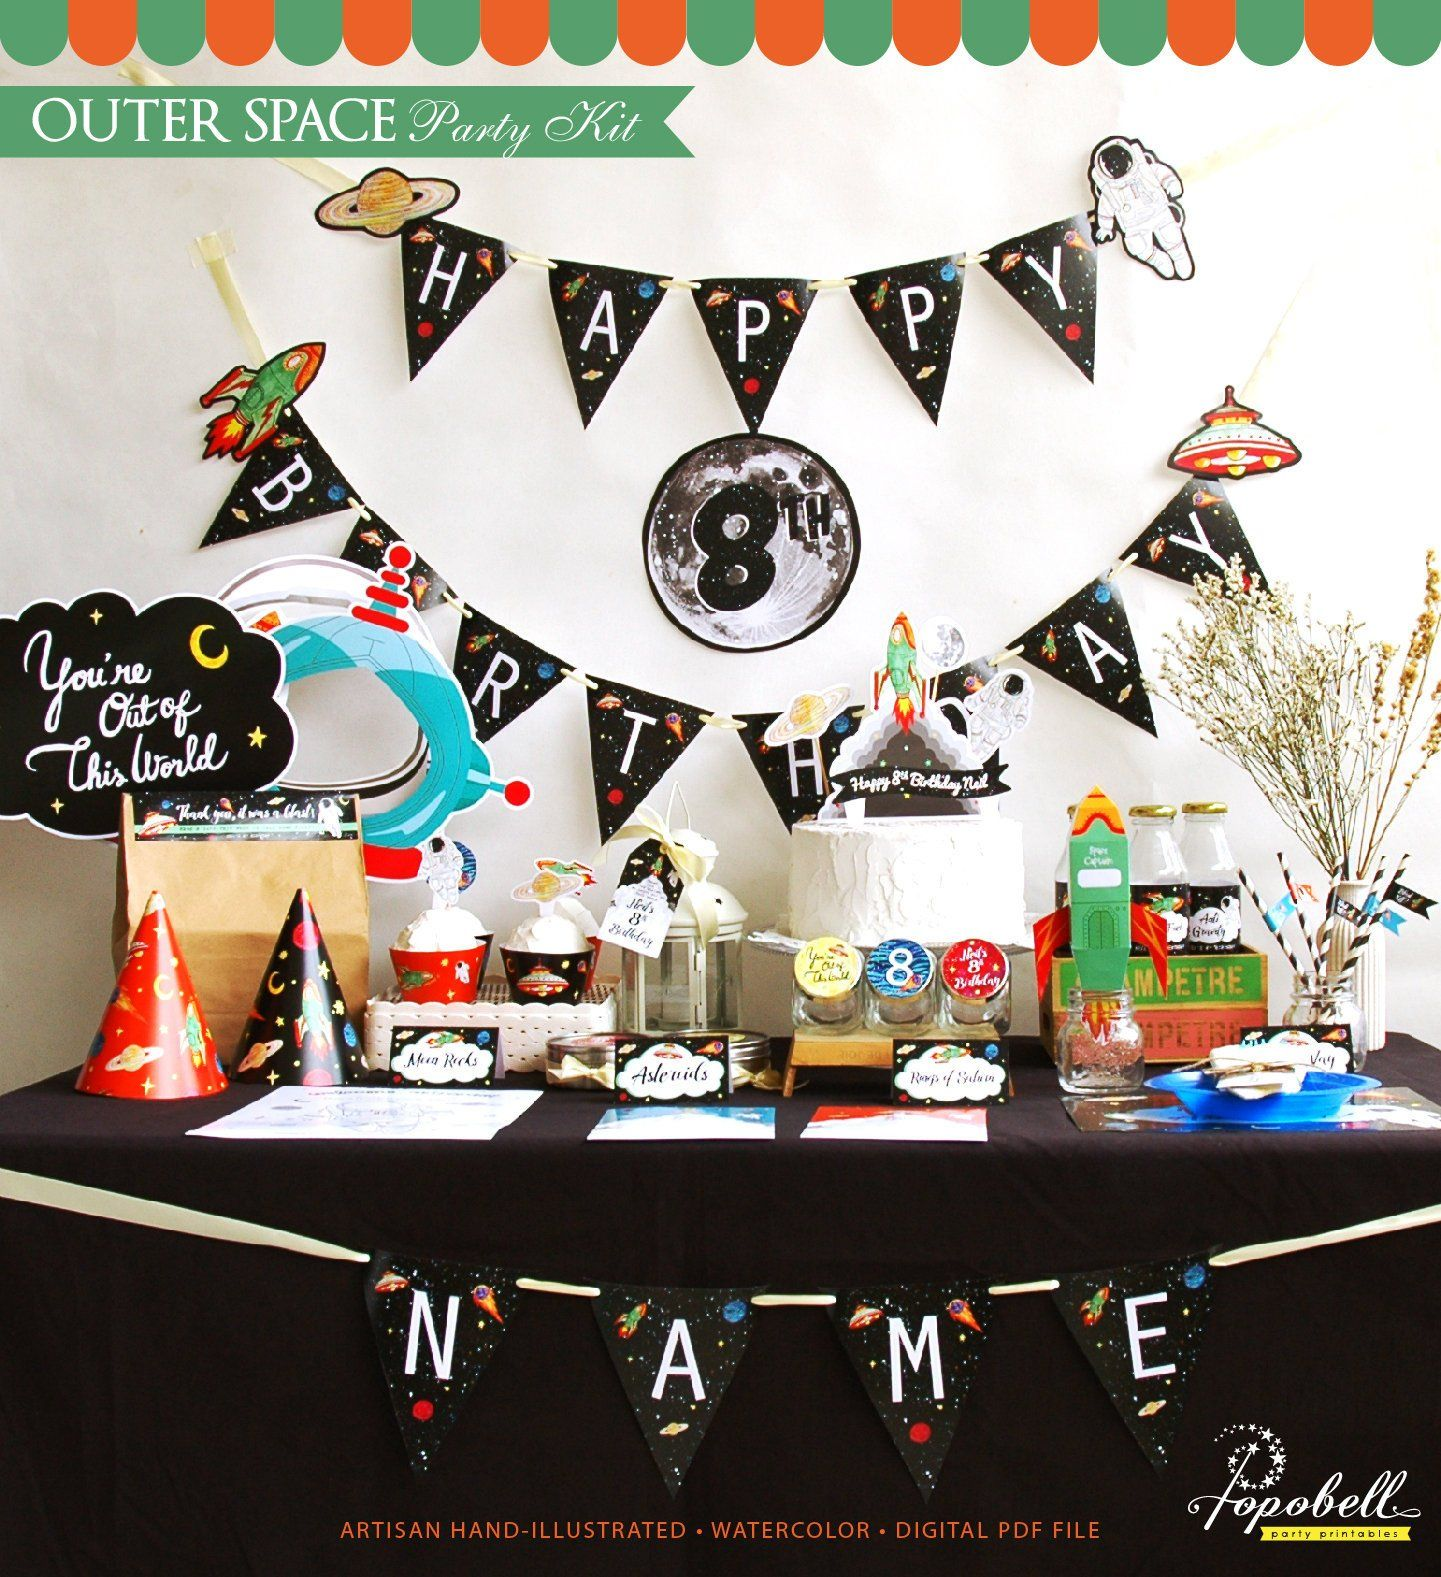 Outer Space Party Kit. Complete Outer Space Printables. Outer Space birthday party kit. Outer Space Party Set. Astronaut Party. DIGITAL PDFs #outerspaceparty